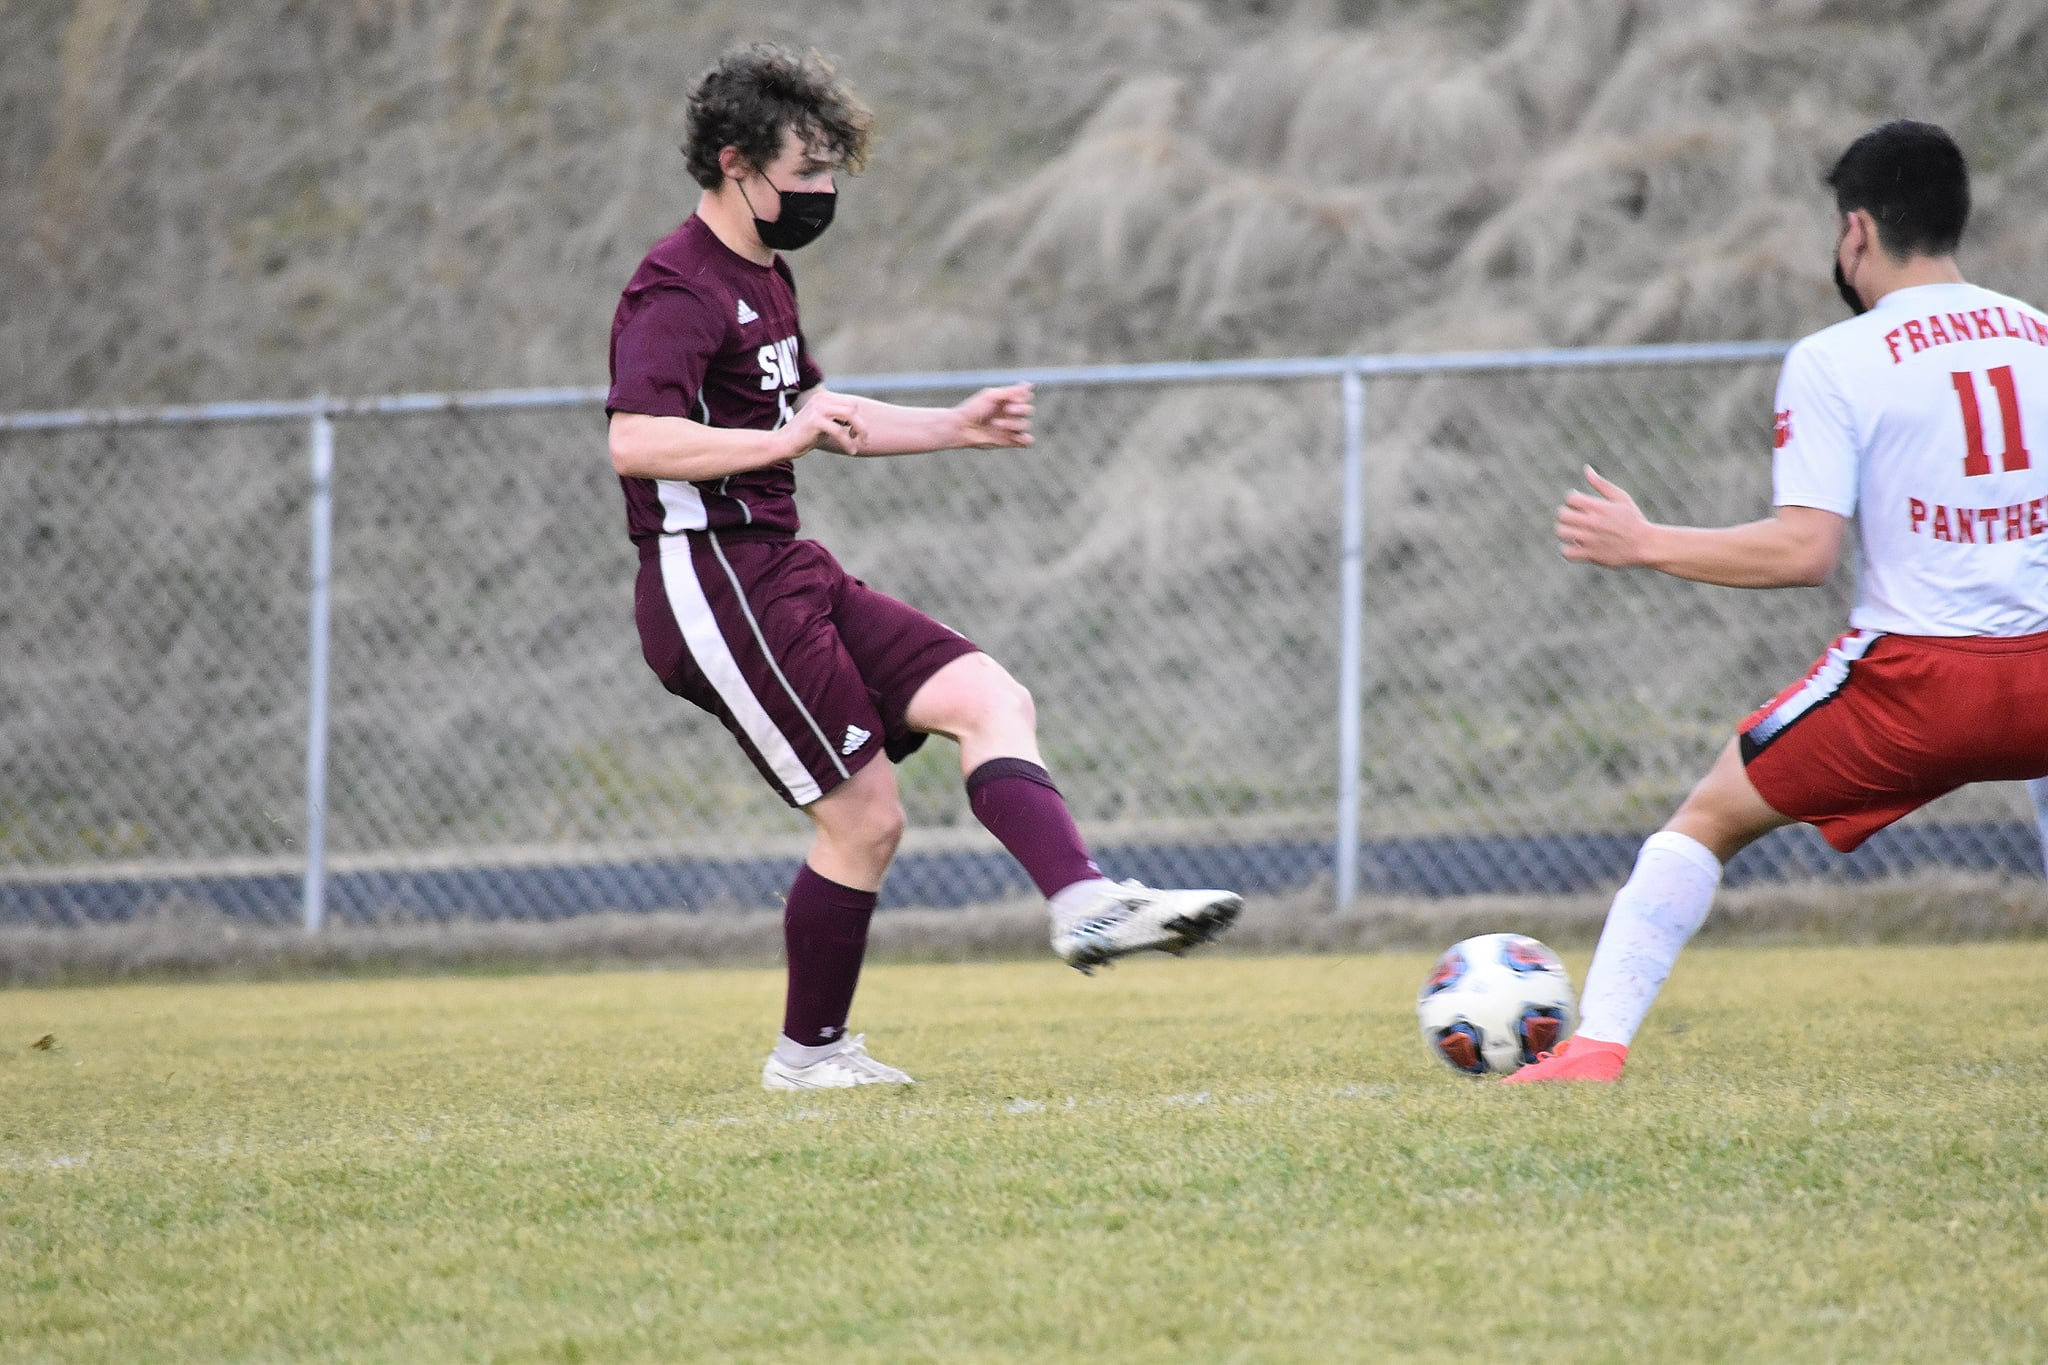 Devils Blank #6 in State Highlands 3-0